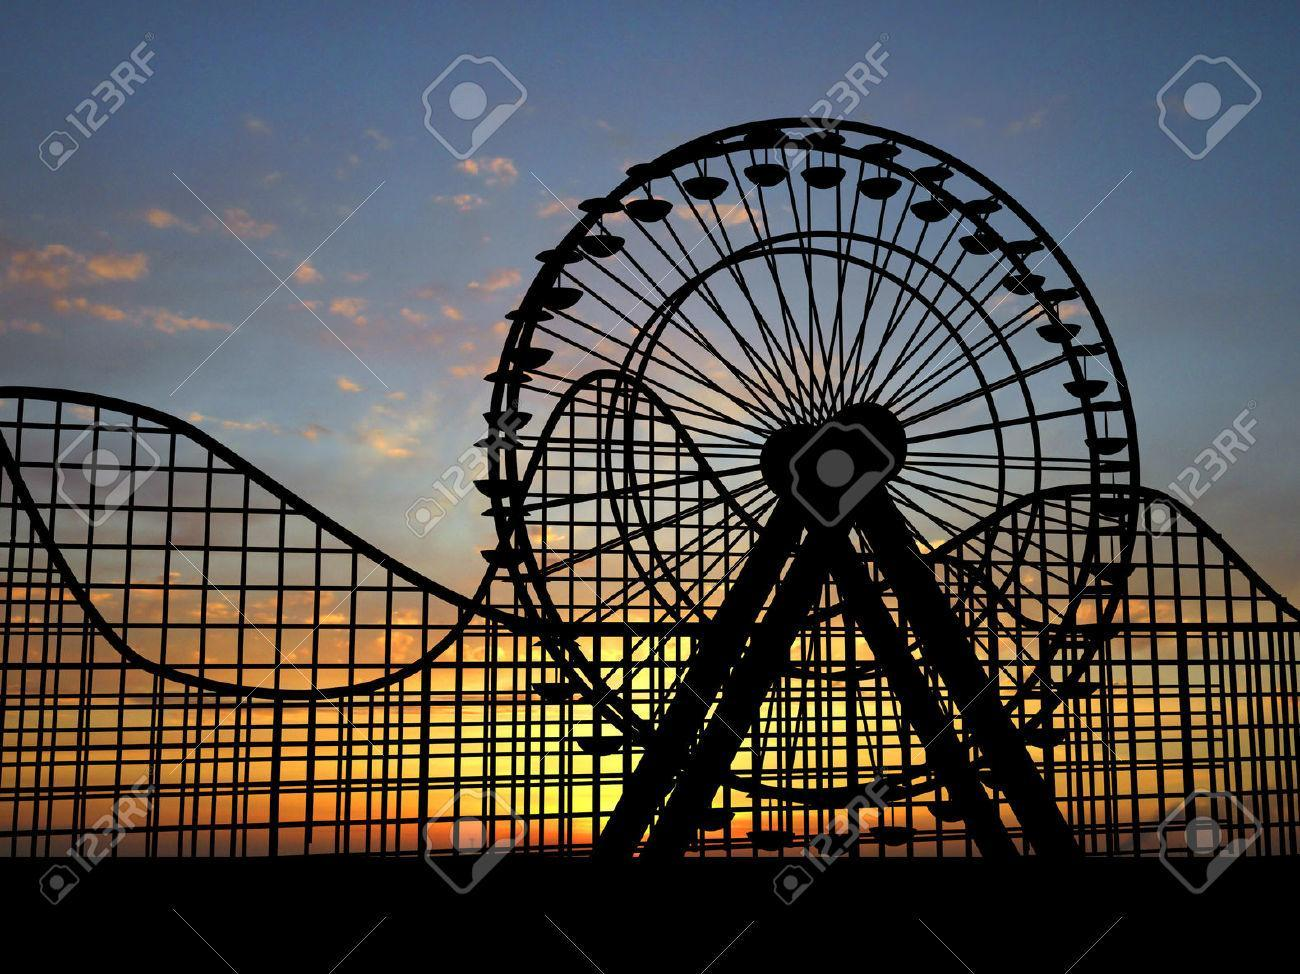 Crazy, loopy roller coaster or quiet, simple Ferris wheel?